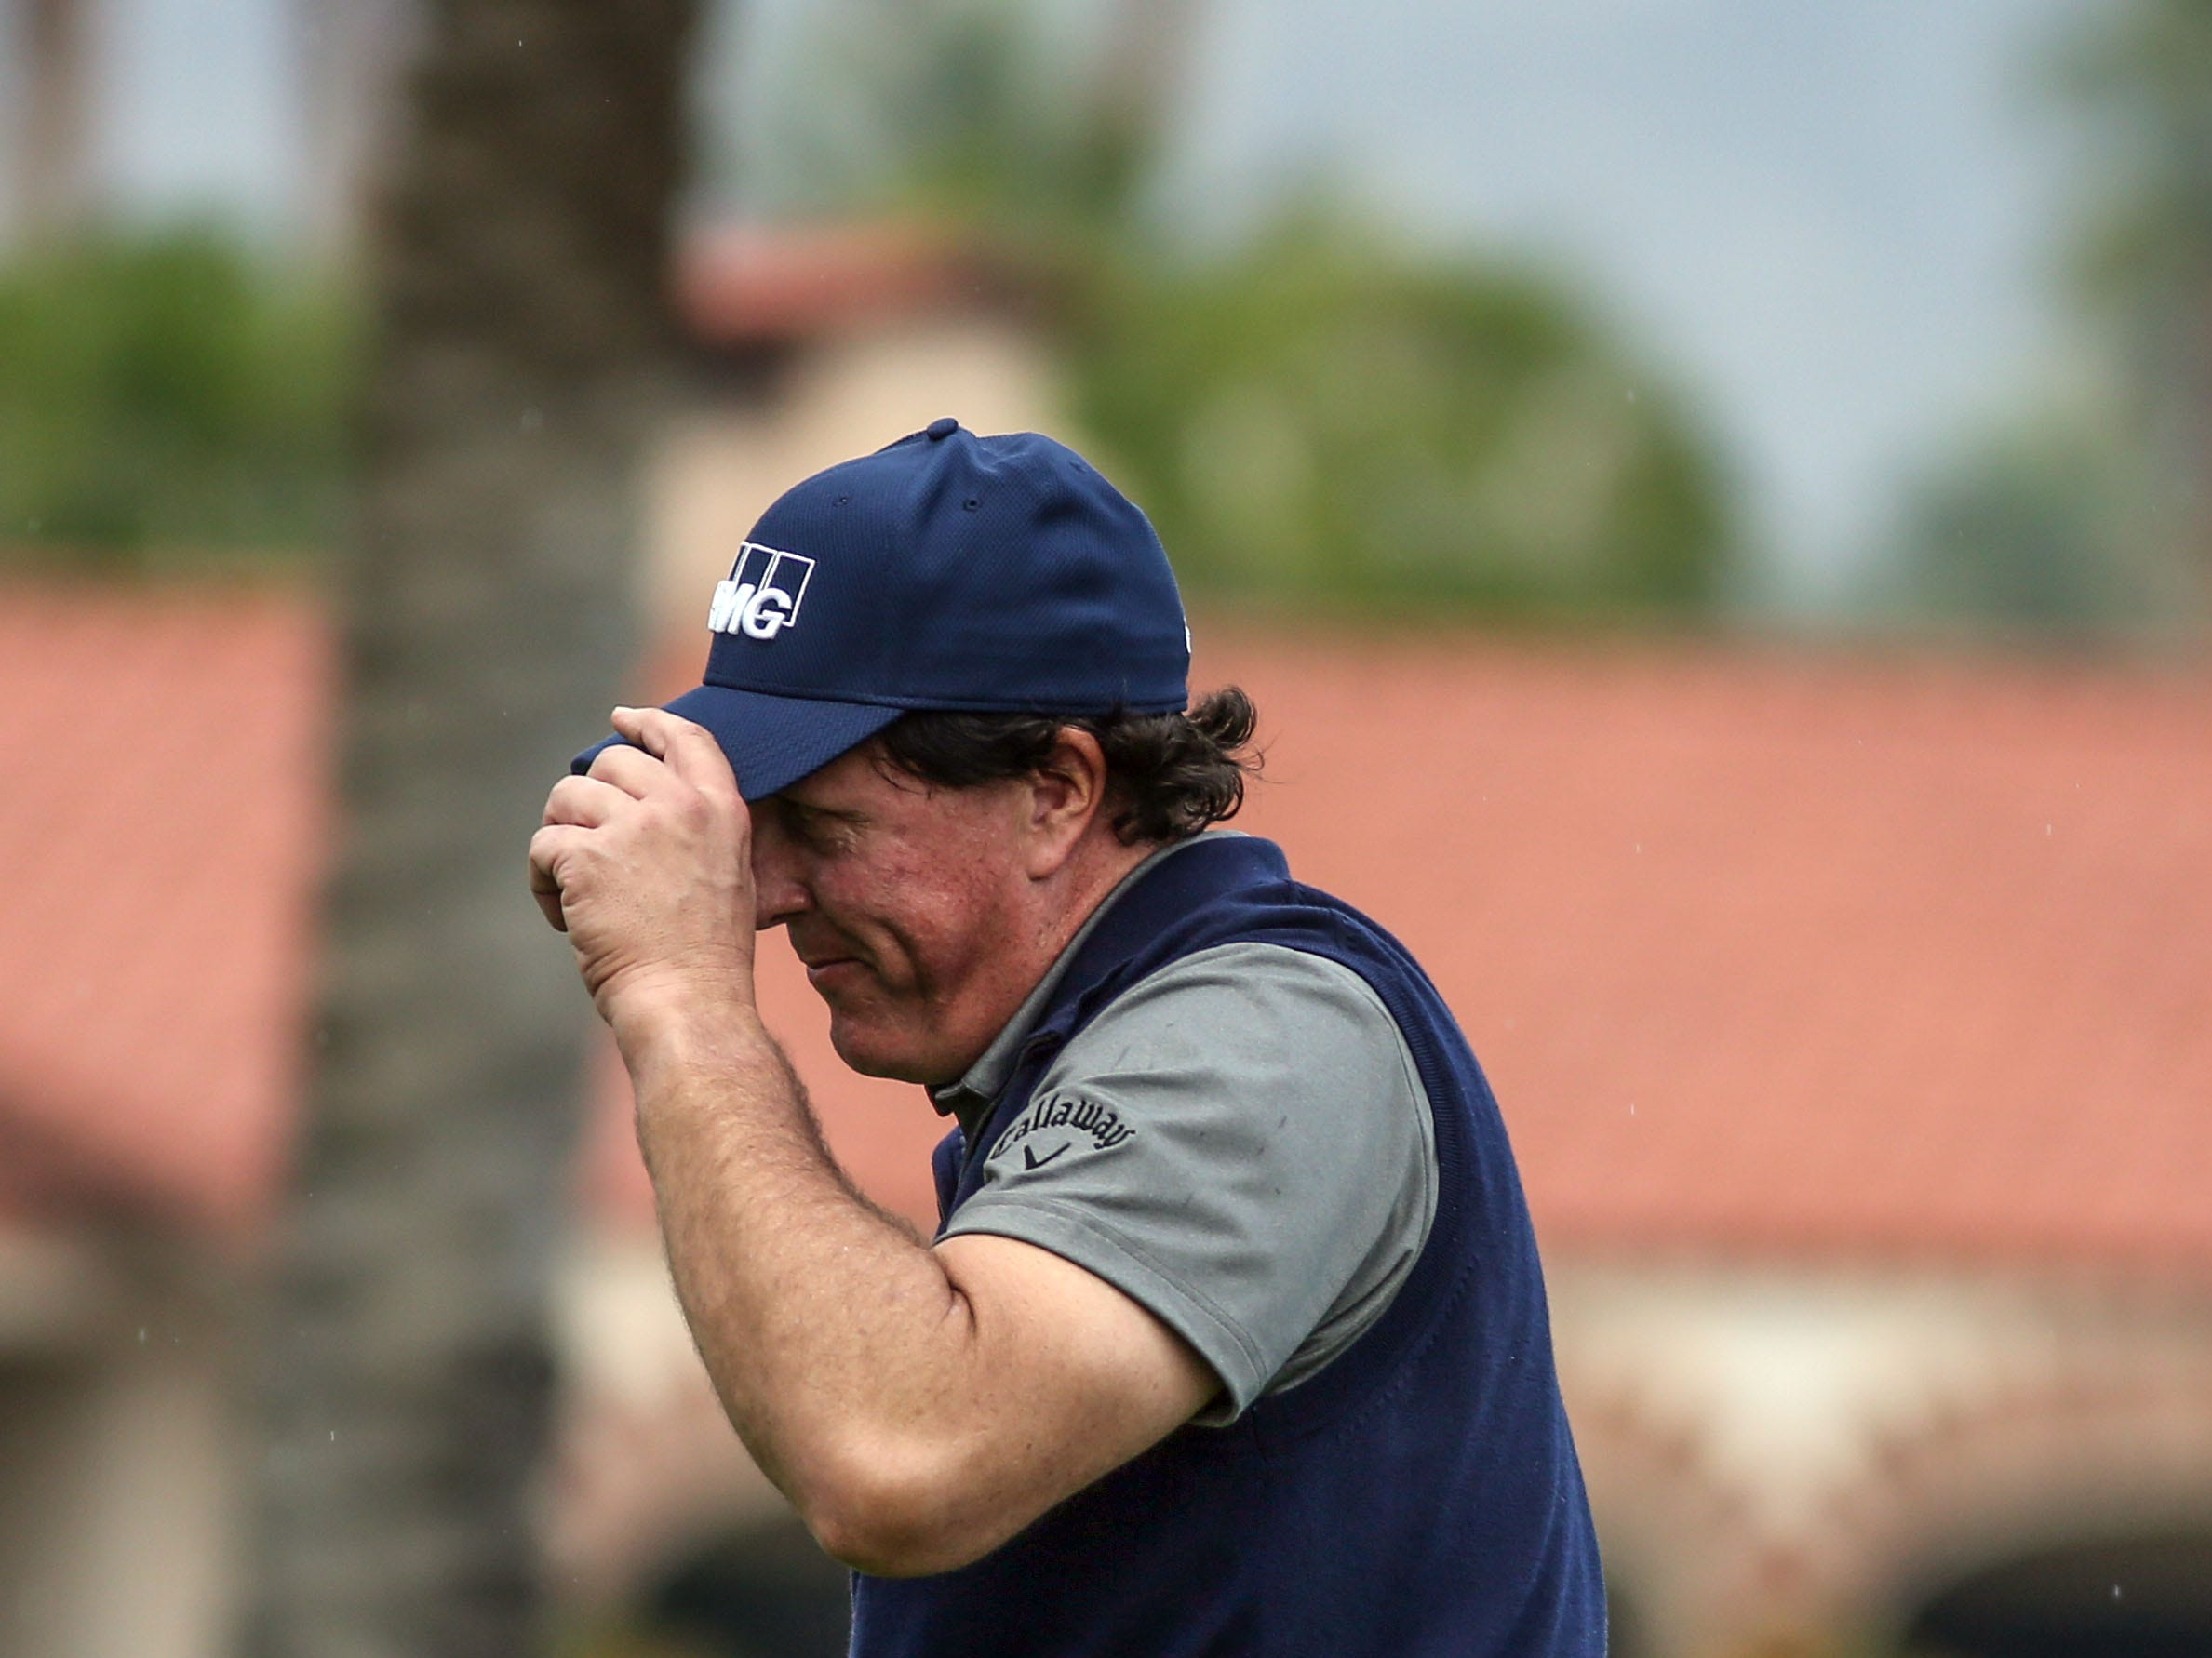 Phil Mickelson tips his cap on 18 at La Quinta County Club during the 1st round of the Desert Classic on Thursday, January 17, 2019. Mickelson leads at the end of the day with 12 under.